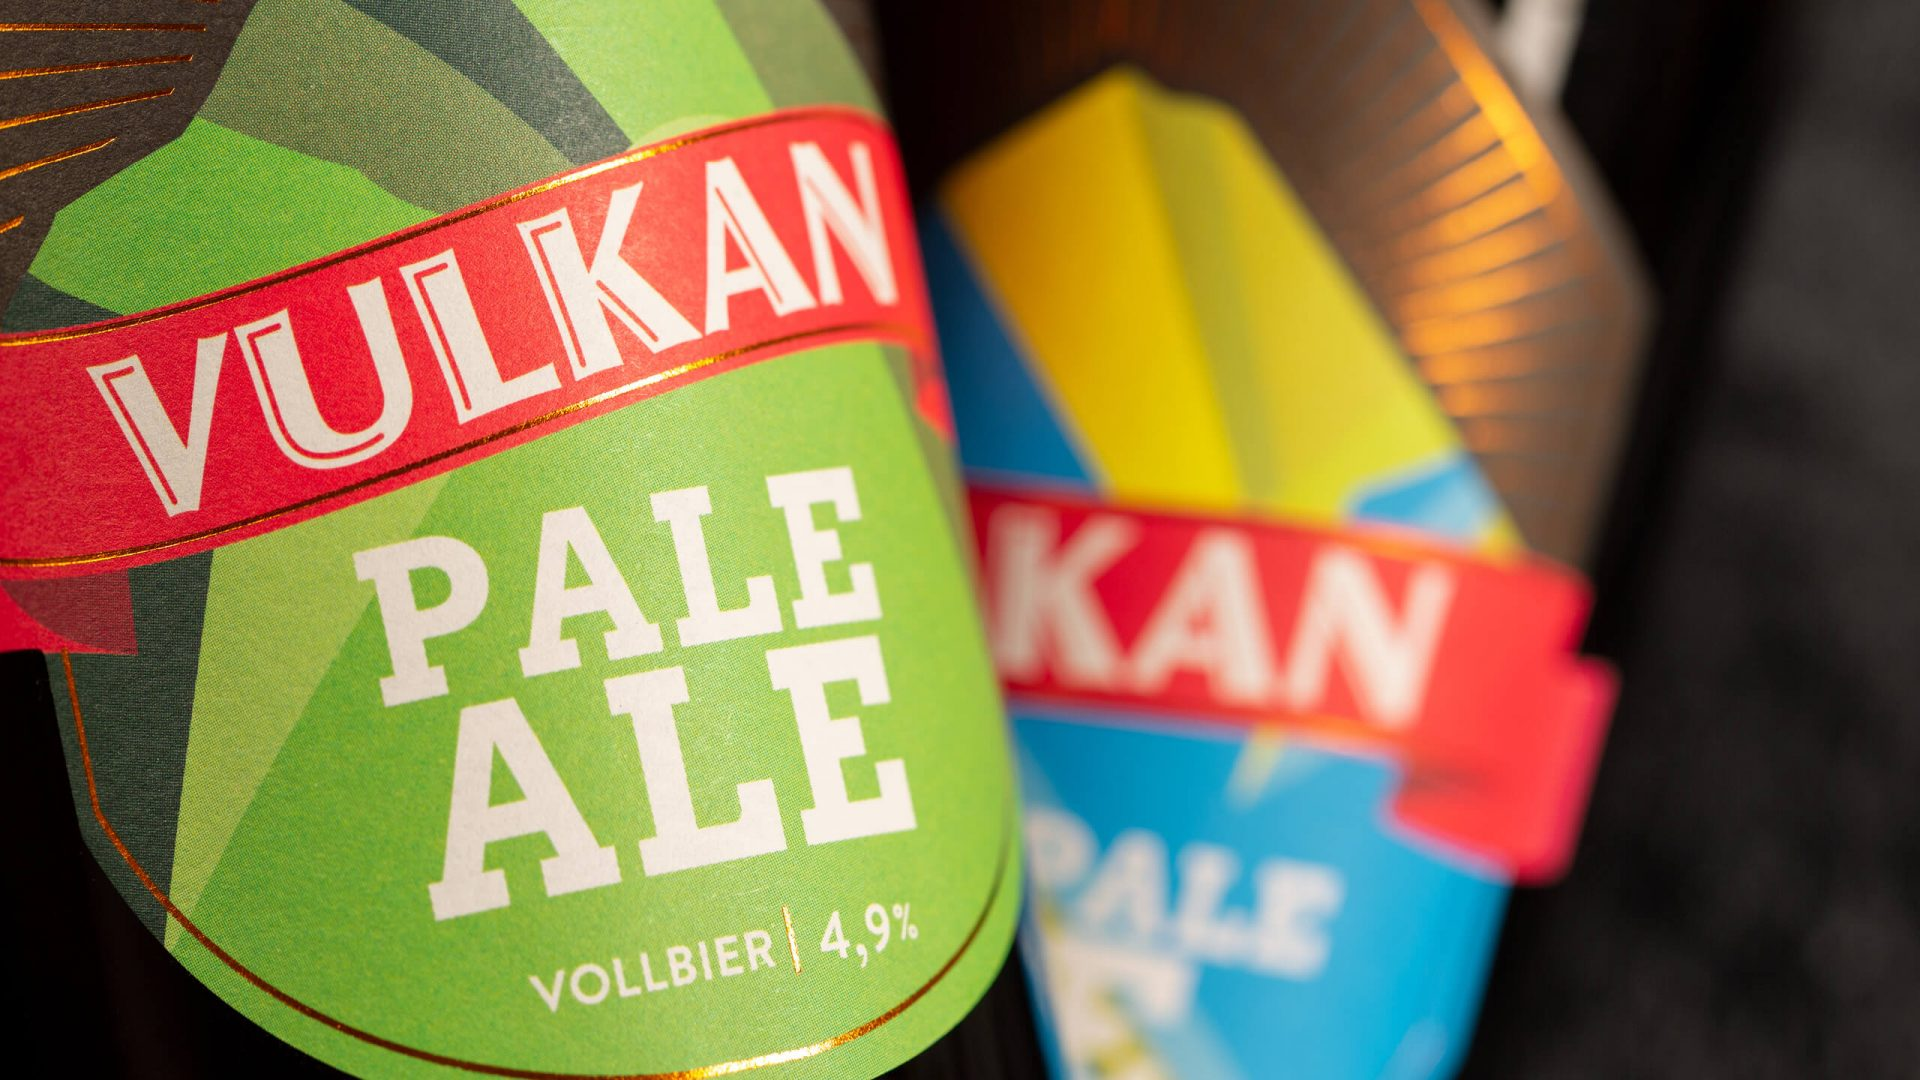 Vulkan Craft Bier